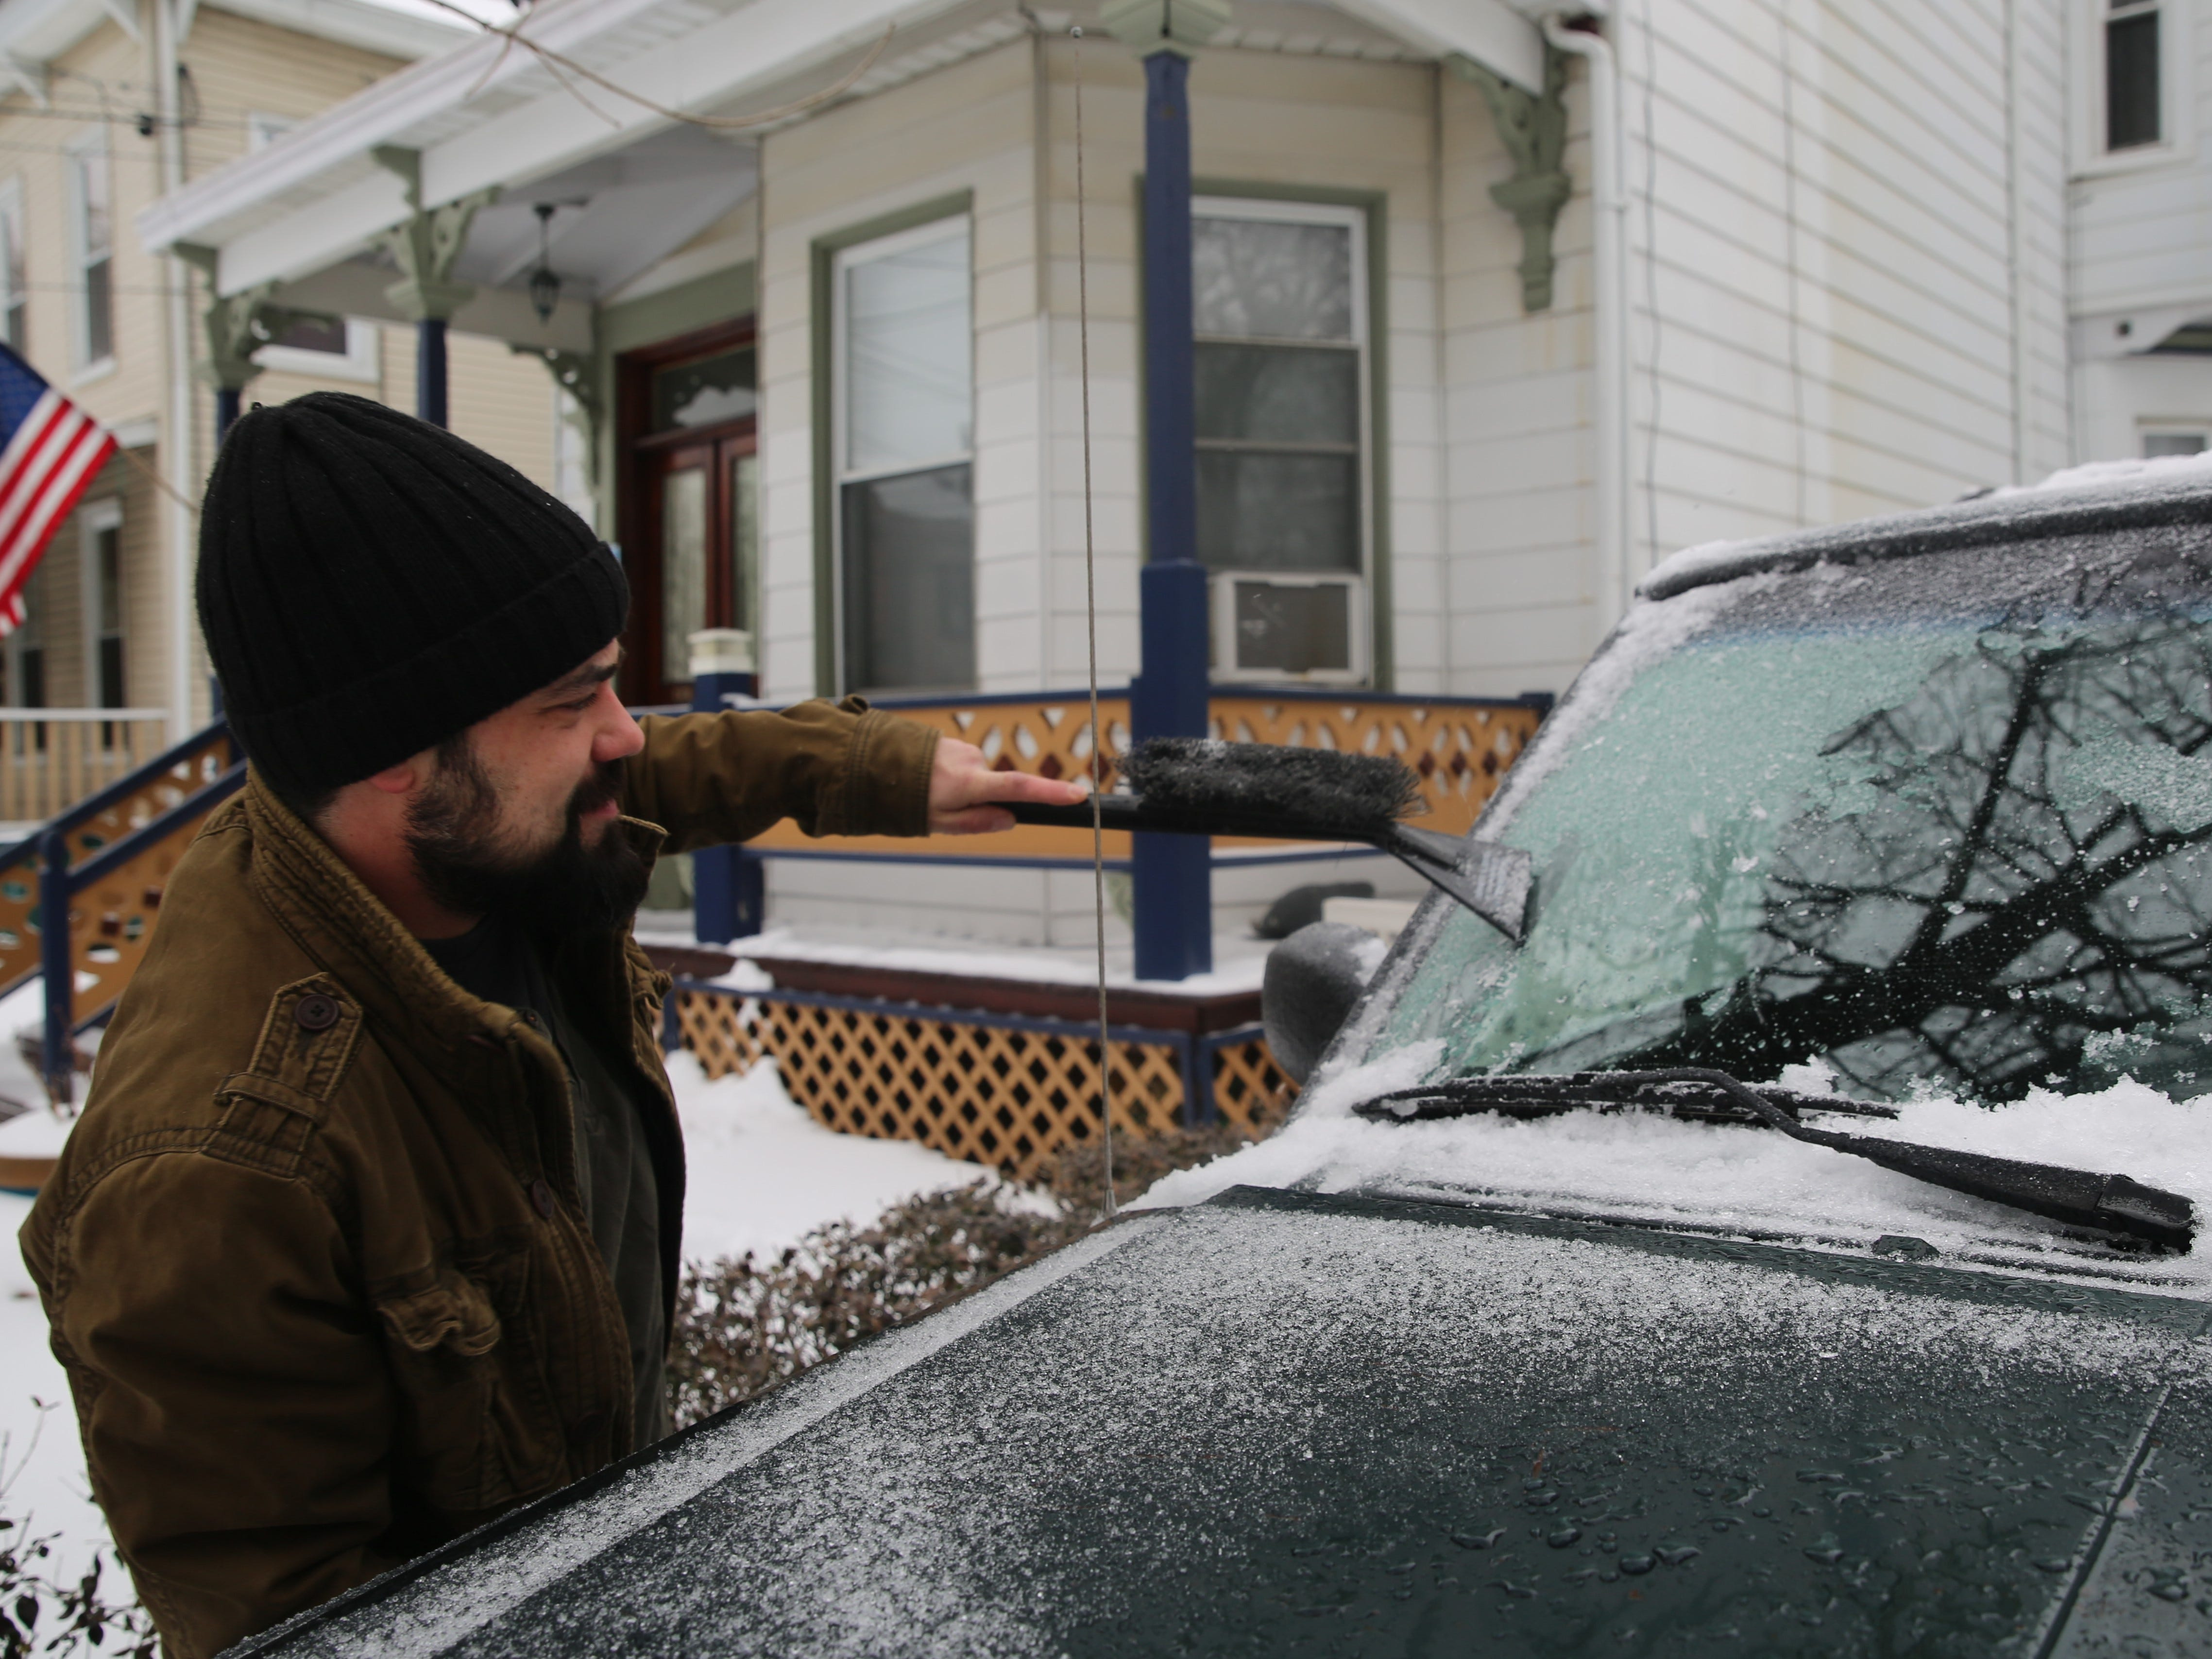 Jesse Tucker, 36, of the City of Poughkeepsie, works on getting the ice off of his Jeep on Sunday morning. Dutchess residents awoke to a combination of snow and ice that required some shoveling and scraping.